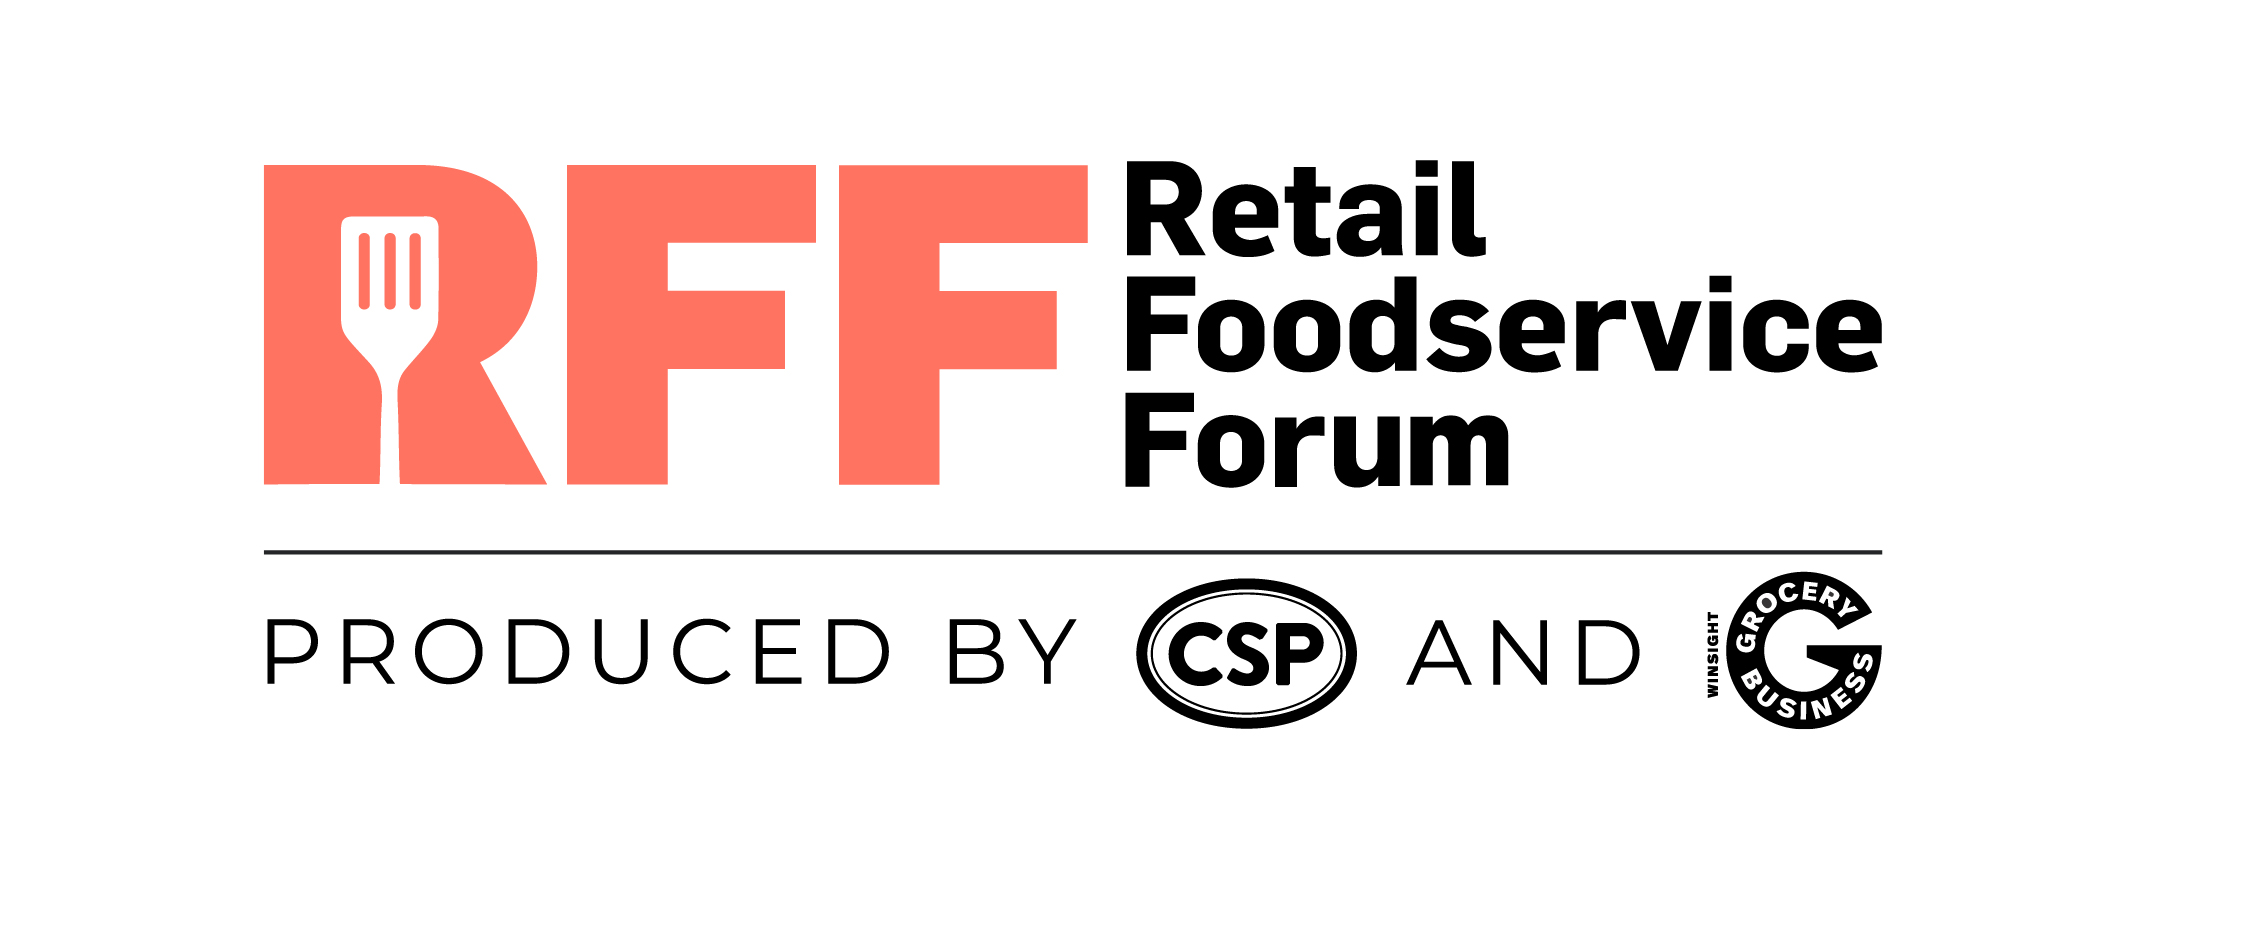 Retail Foodservice Forum